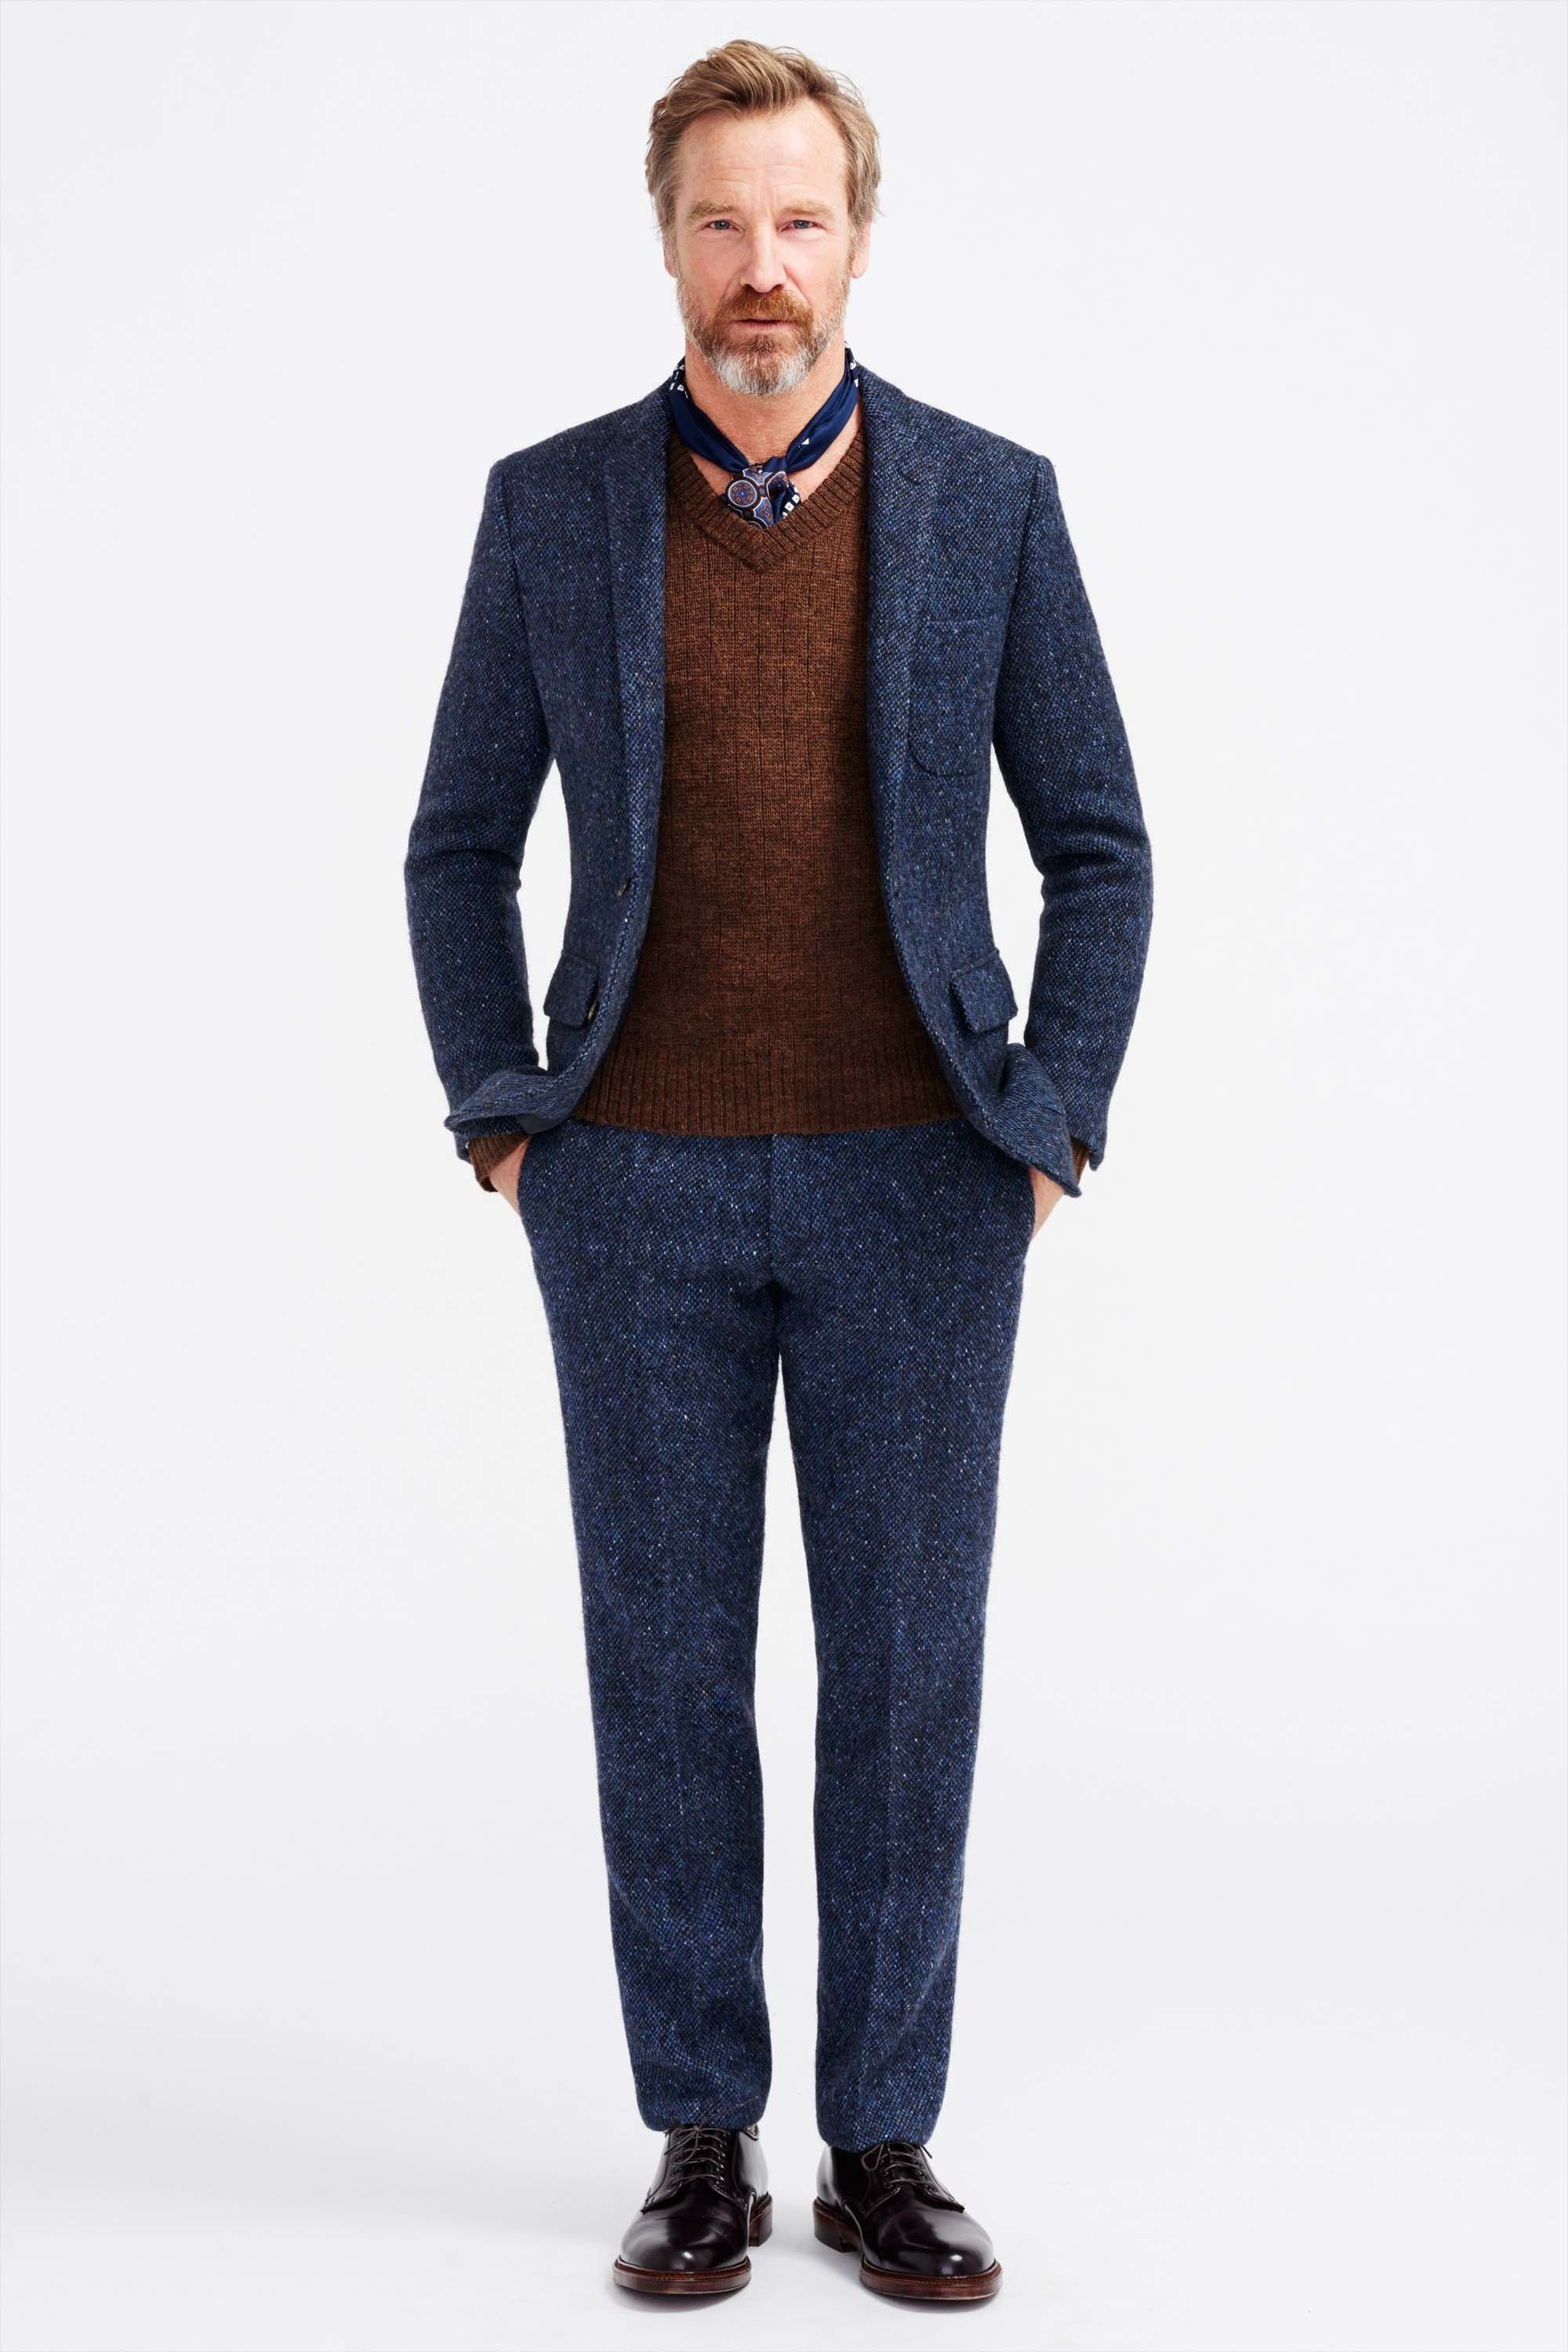 Men's Navy Wool Suit, Brown V-neck Sweater, Black Leather Dress ...